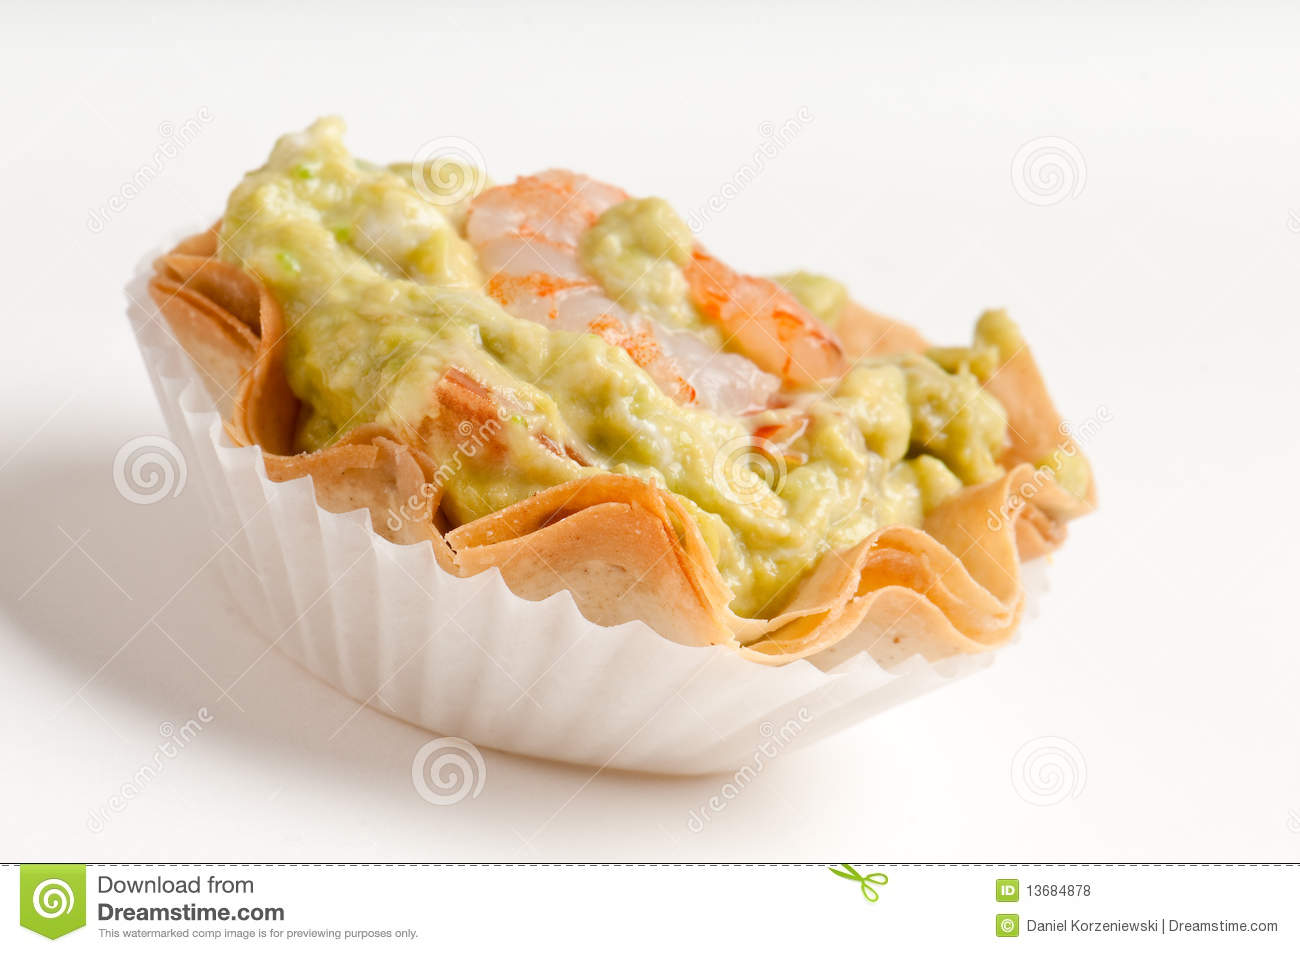 Avocado and shrimp voulavent royalty free stock photos for What does canape mean in french